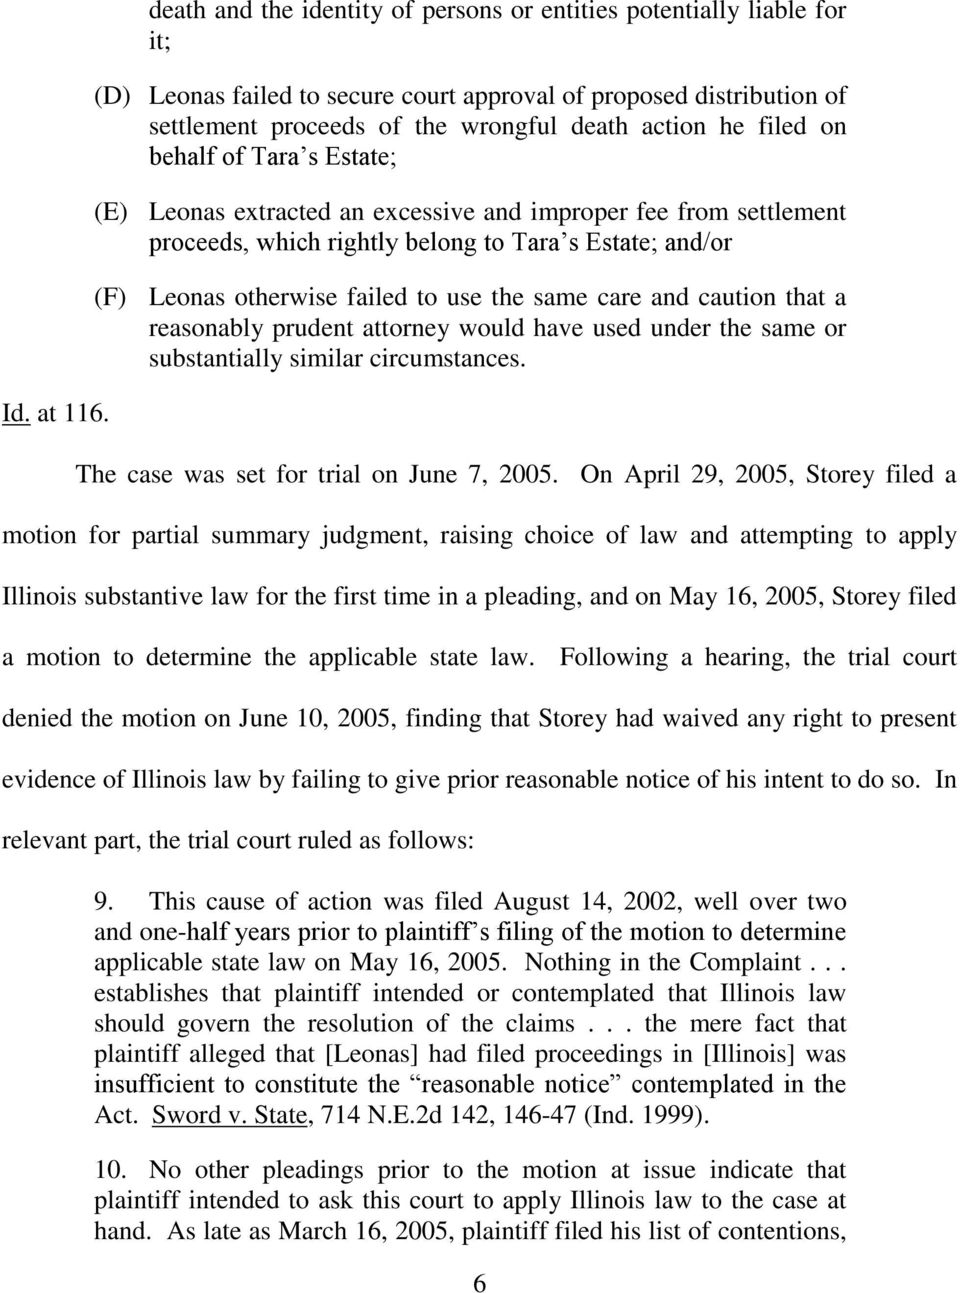 filed on behalf of Tara s Estate; (E) Leonas extracted an excessive and improper fee from settlement proceeds, which rightly belong to Tara s Estate; and/or (F) Leonas otherwise failed to use the